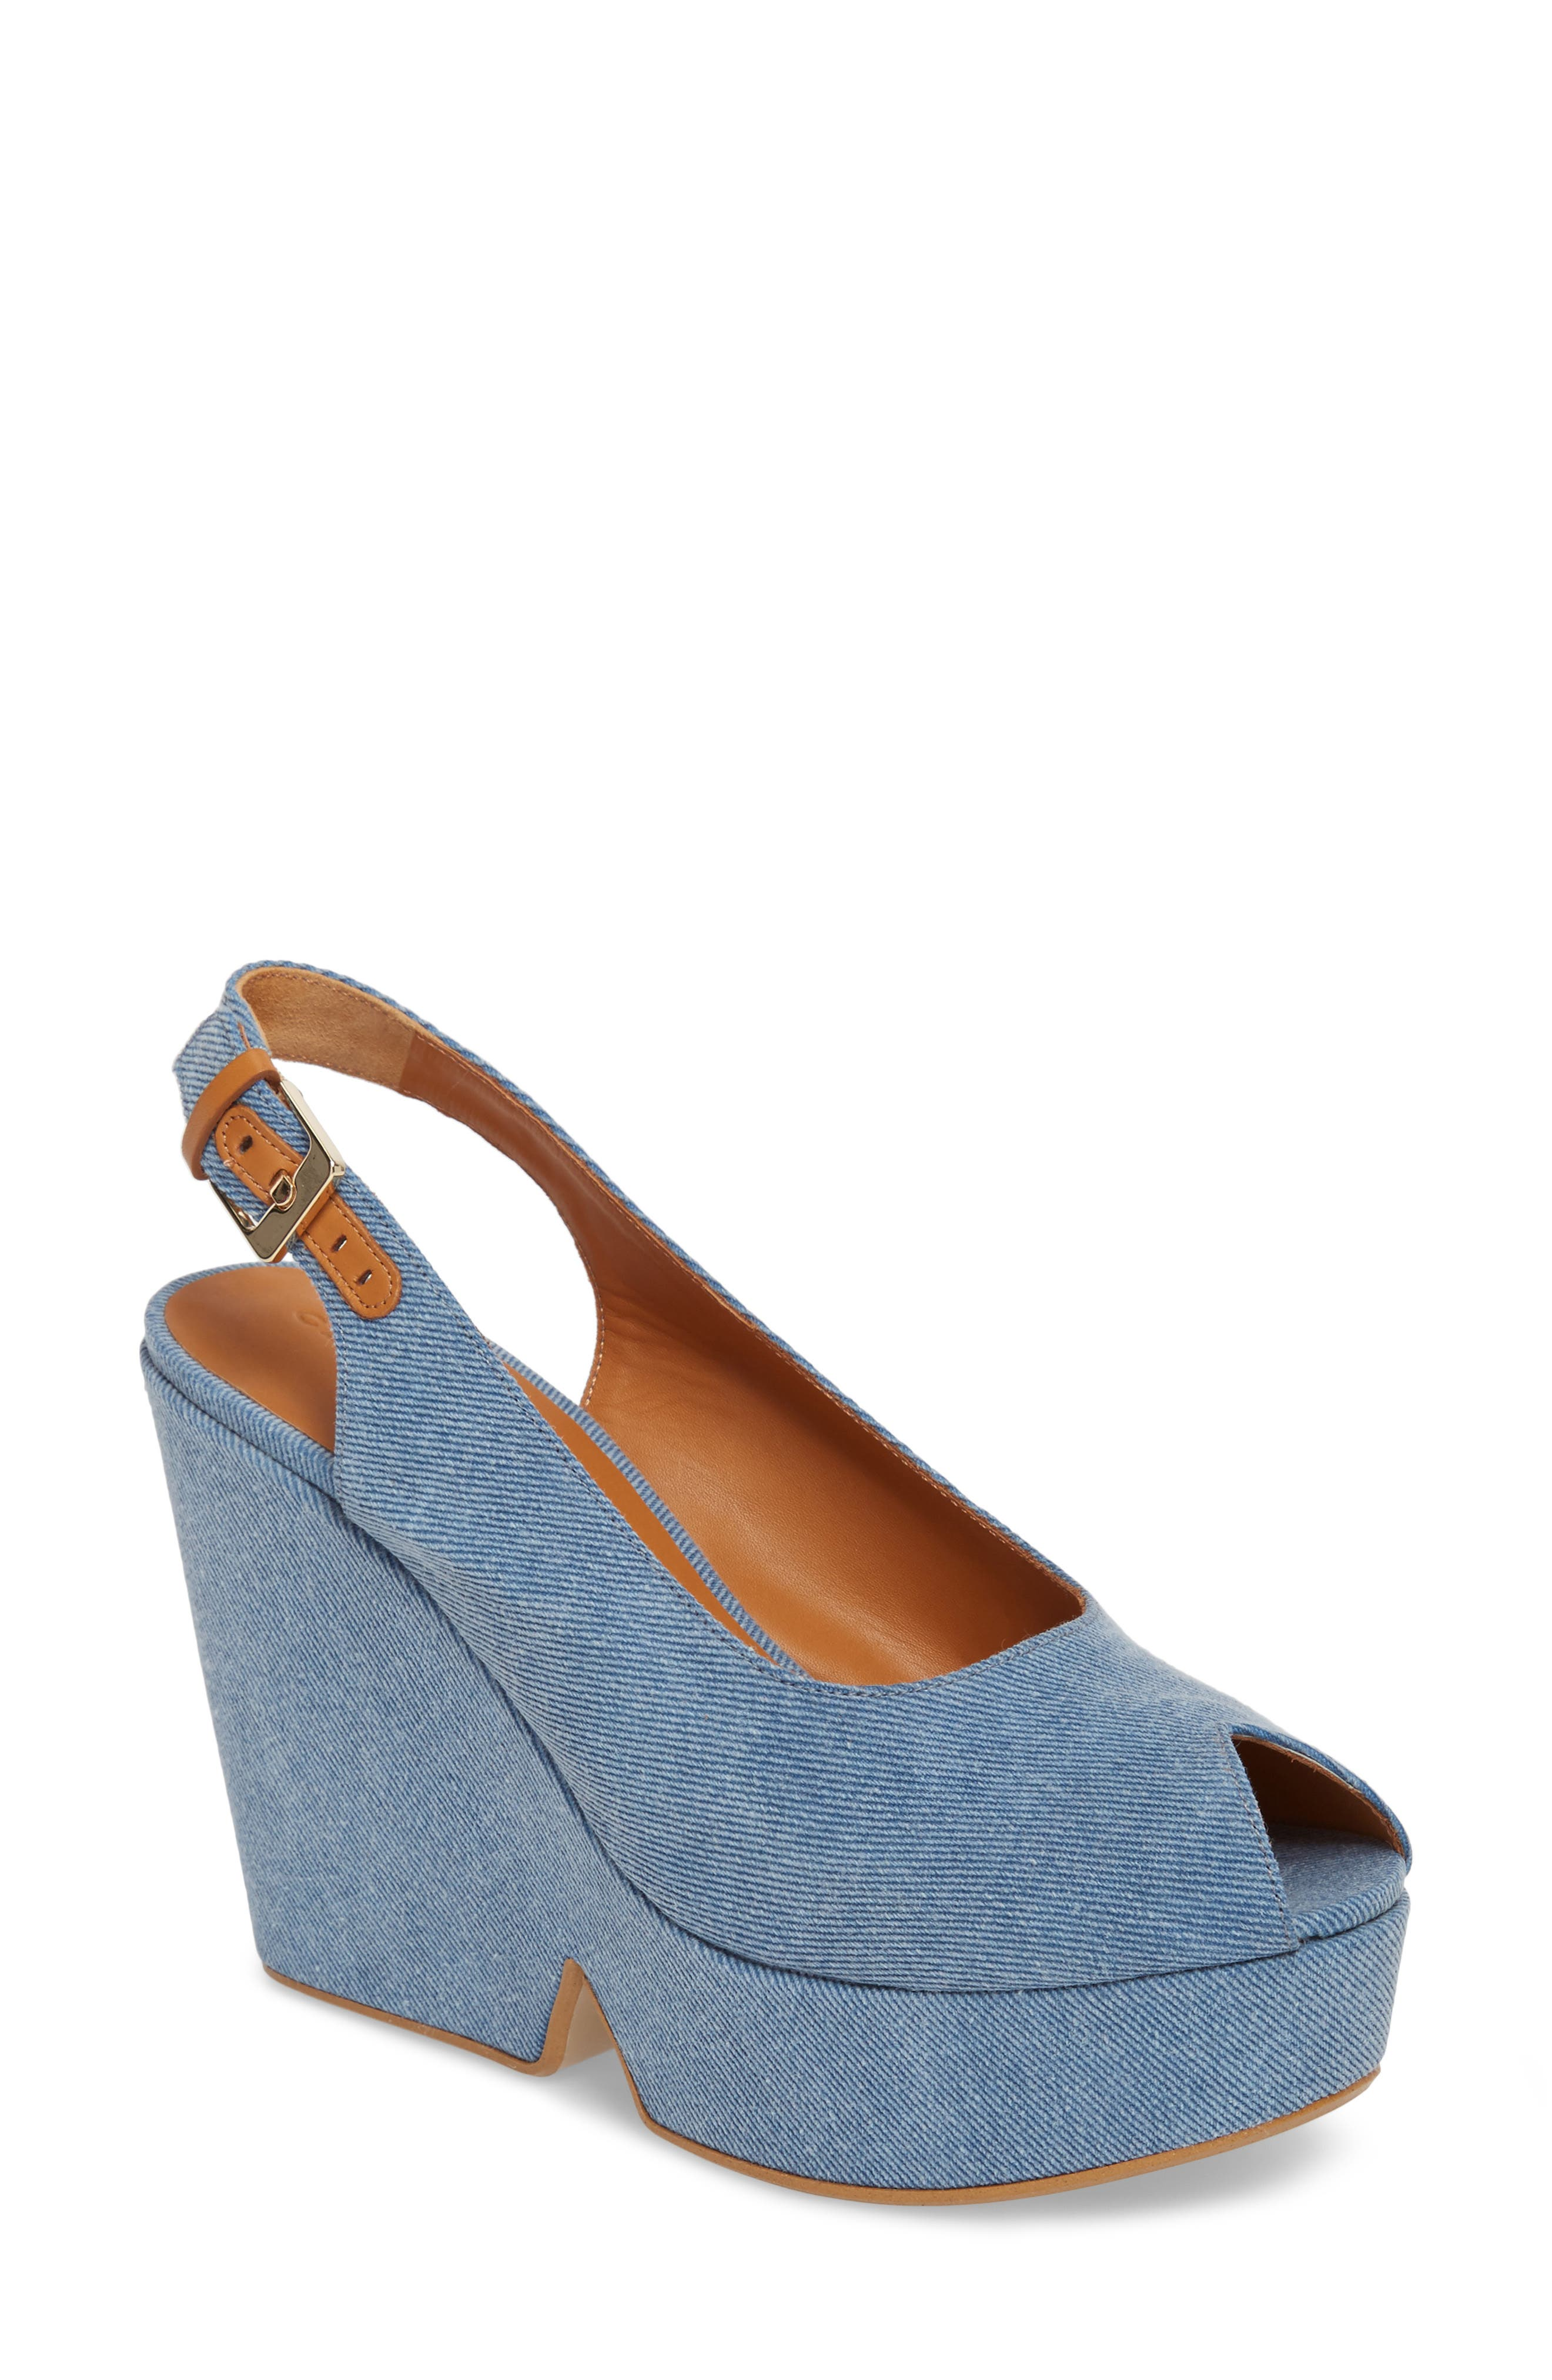 Alternate Image 1 Selected - Robert Clergerie Dylanto Platform Wedge Sandal (Women)